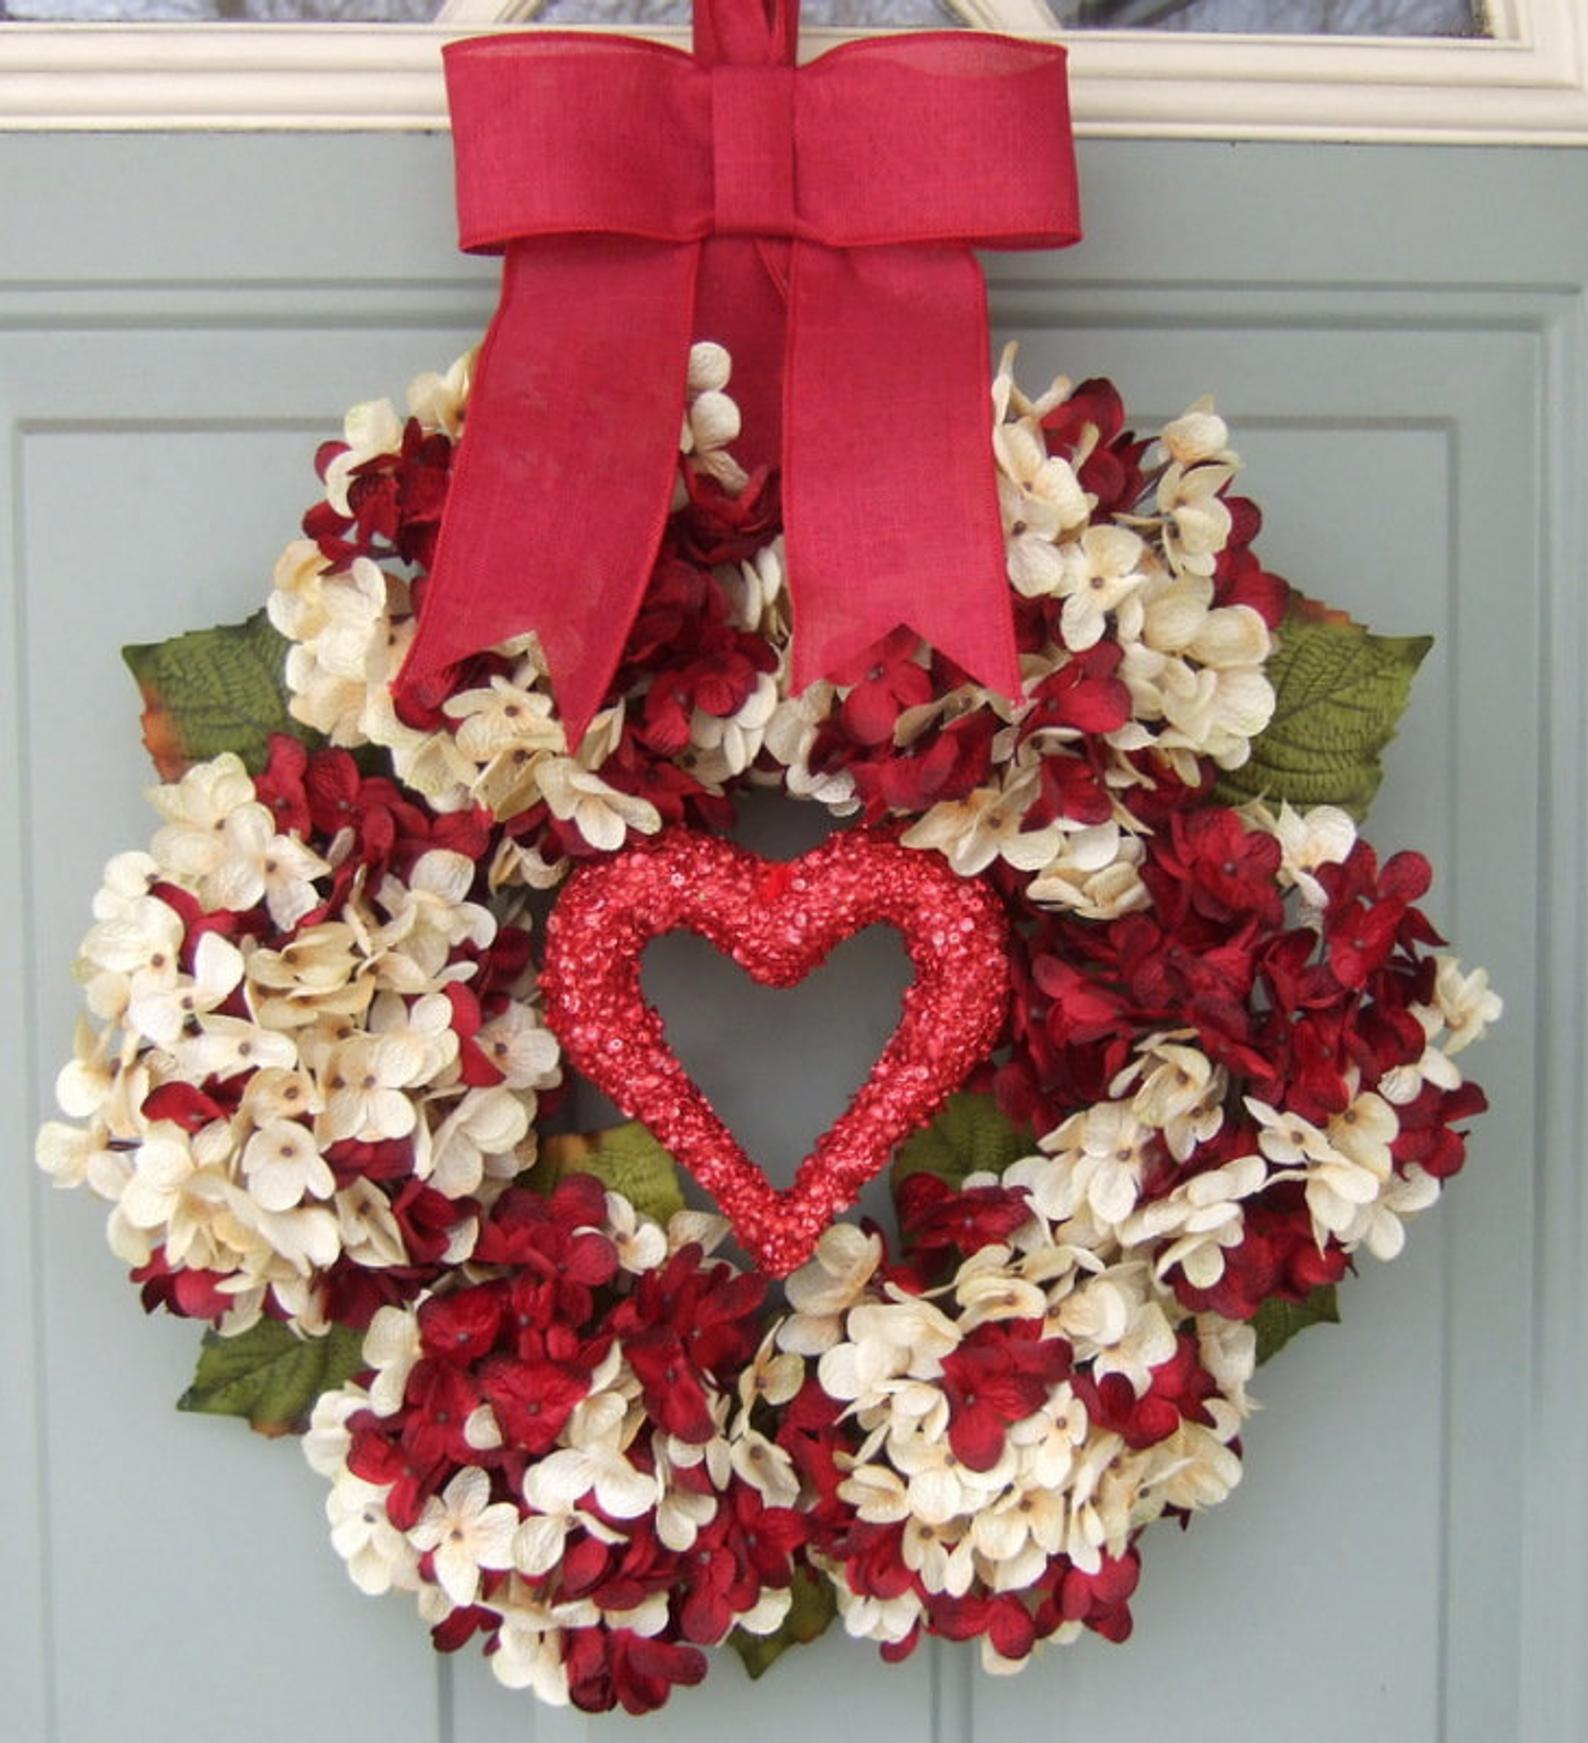 White and red hydrangea wreaths, white and red Valentine's wreaths for the front door